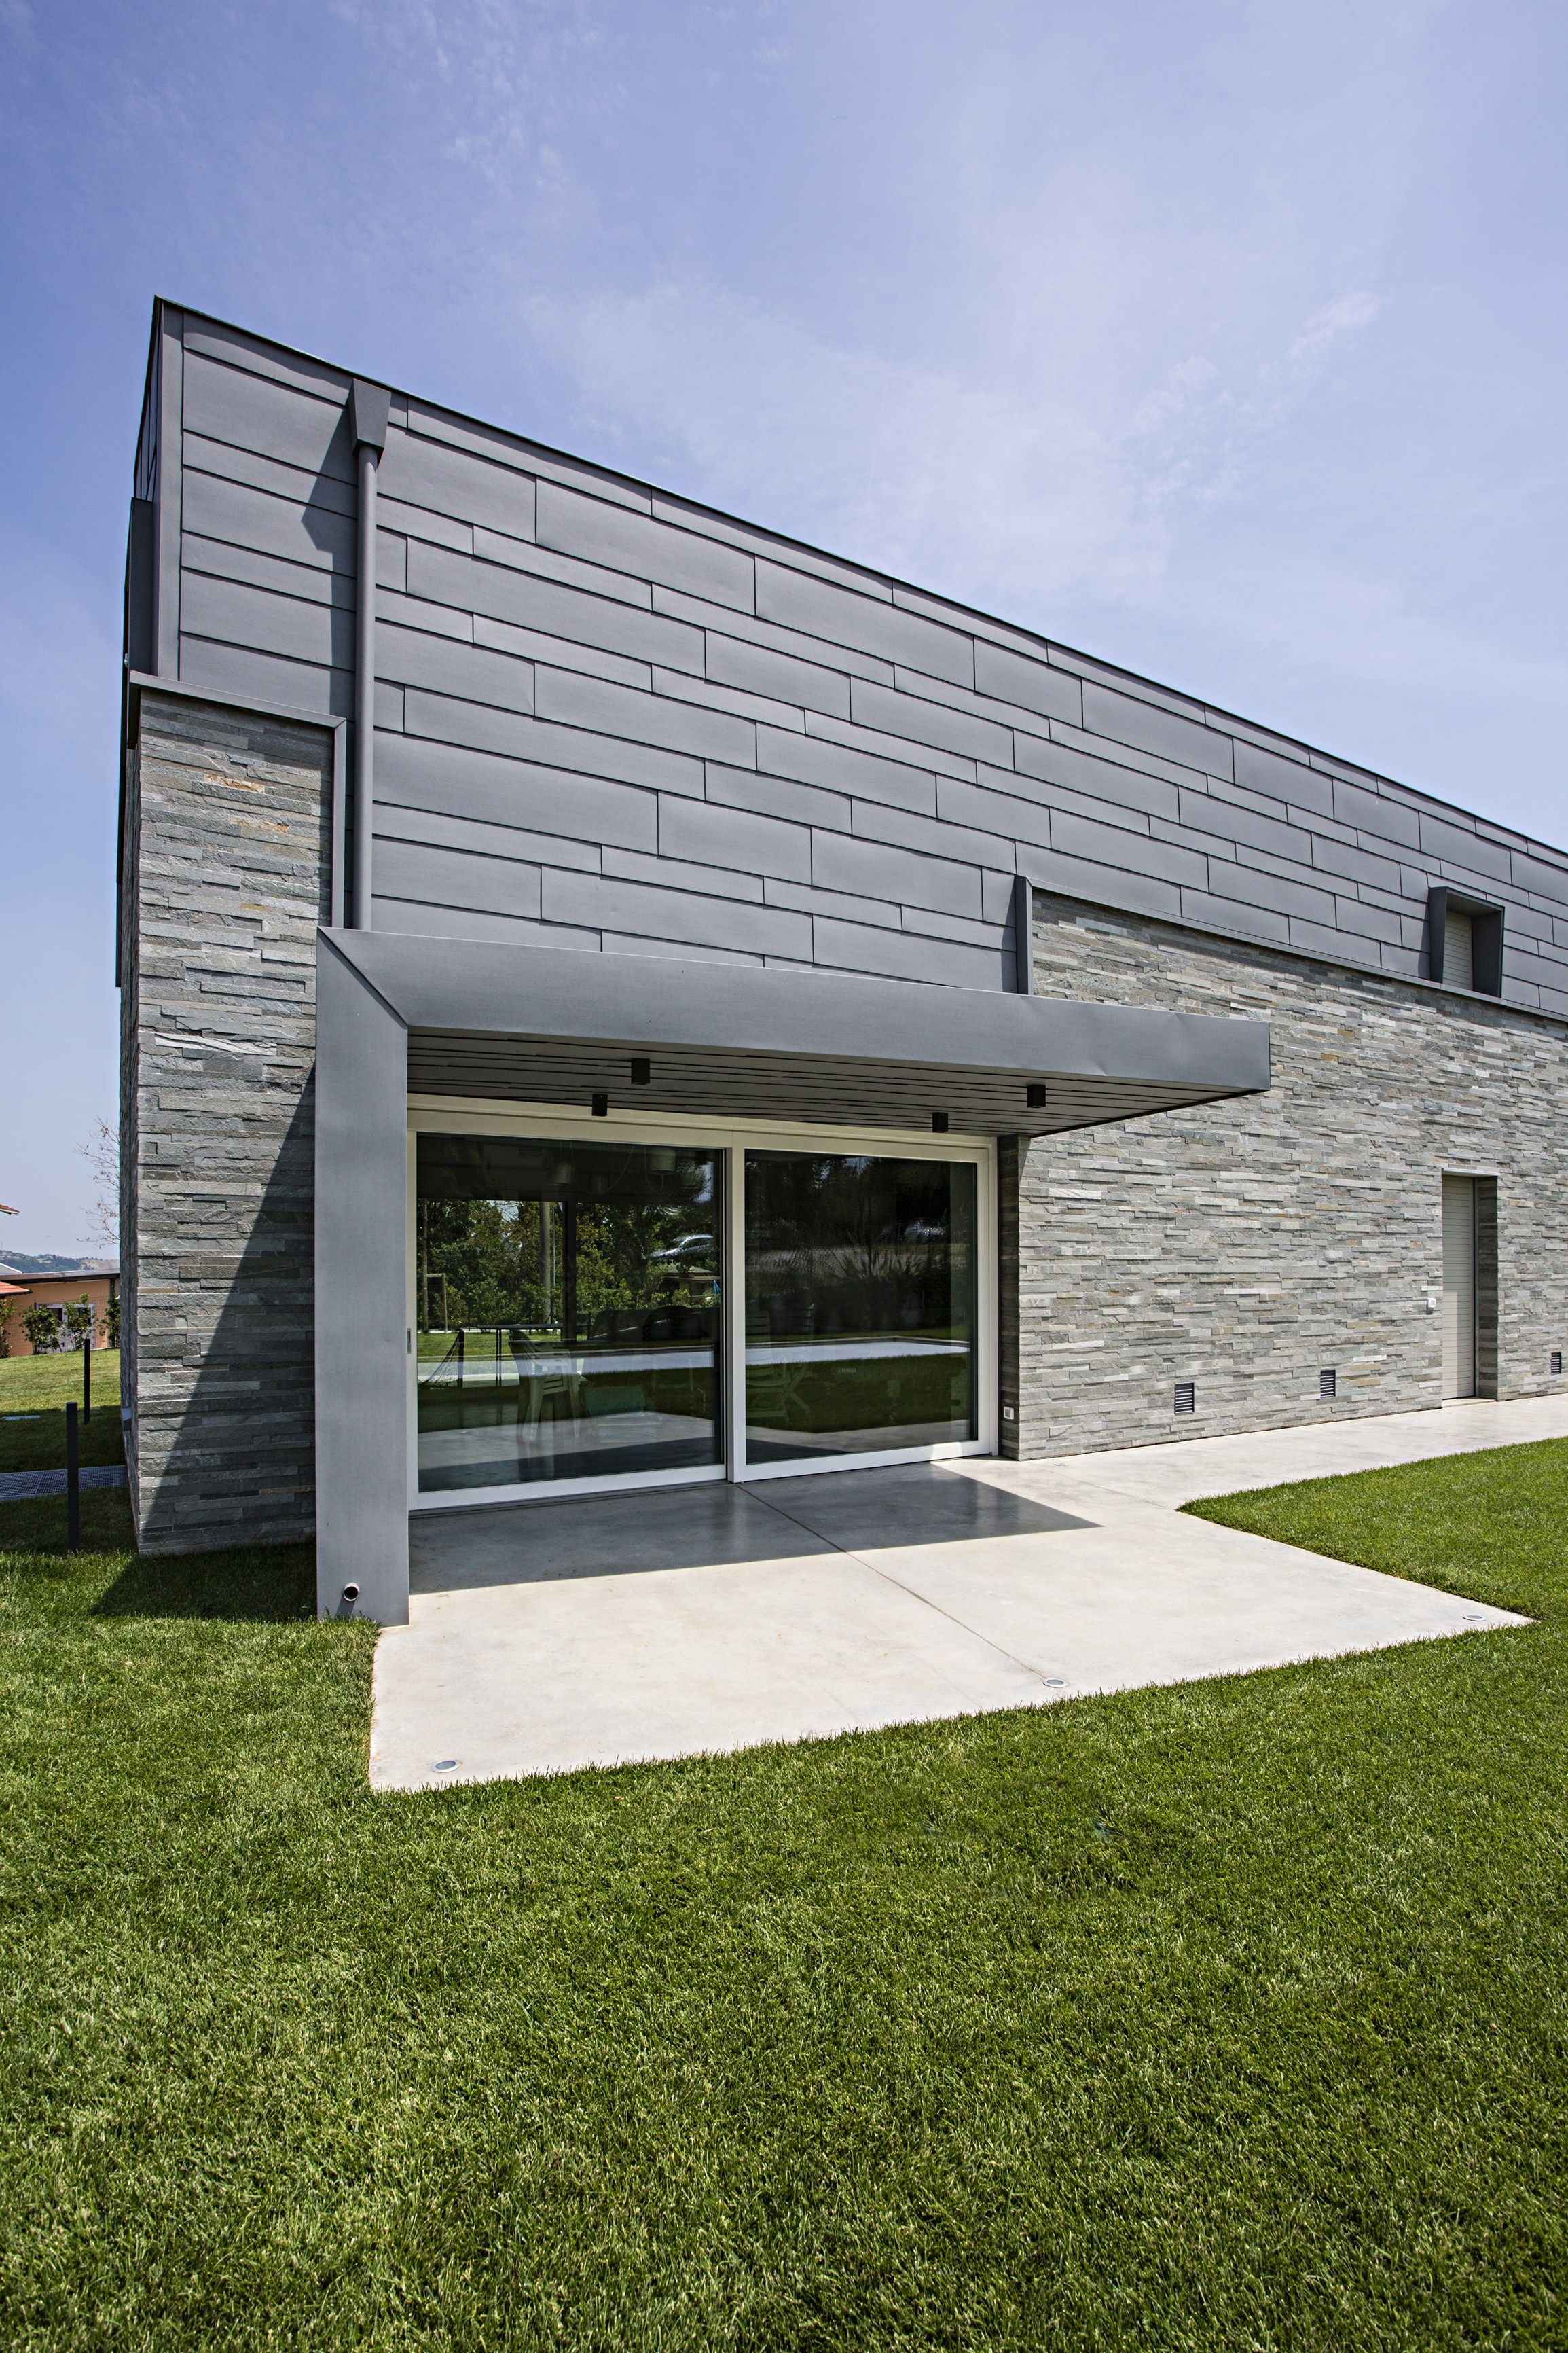 aluminum slats for ventilated facades siding by prefa italia